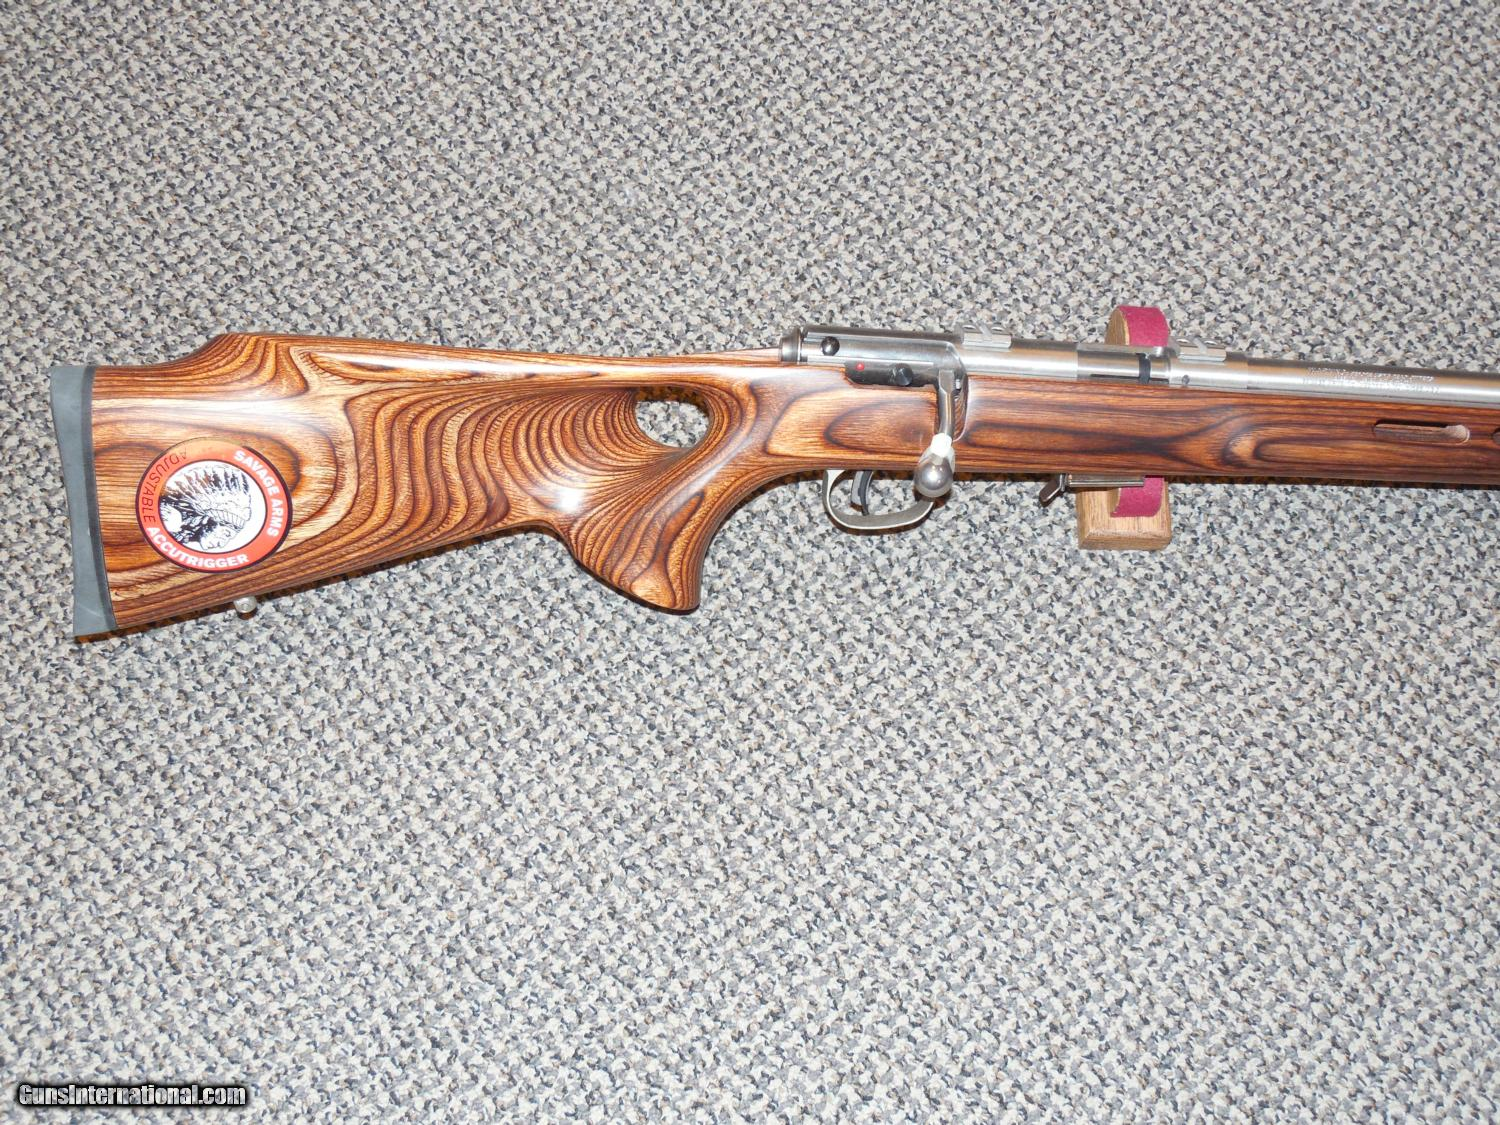 SAVAGE MODEL 93 BTVS RIFLE IN .22 MAGNUM WITH THUMBHOLE LAMINATED STOCK